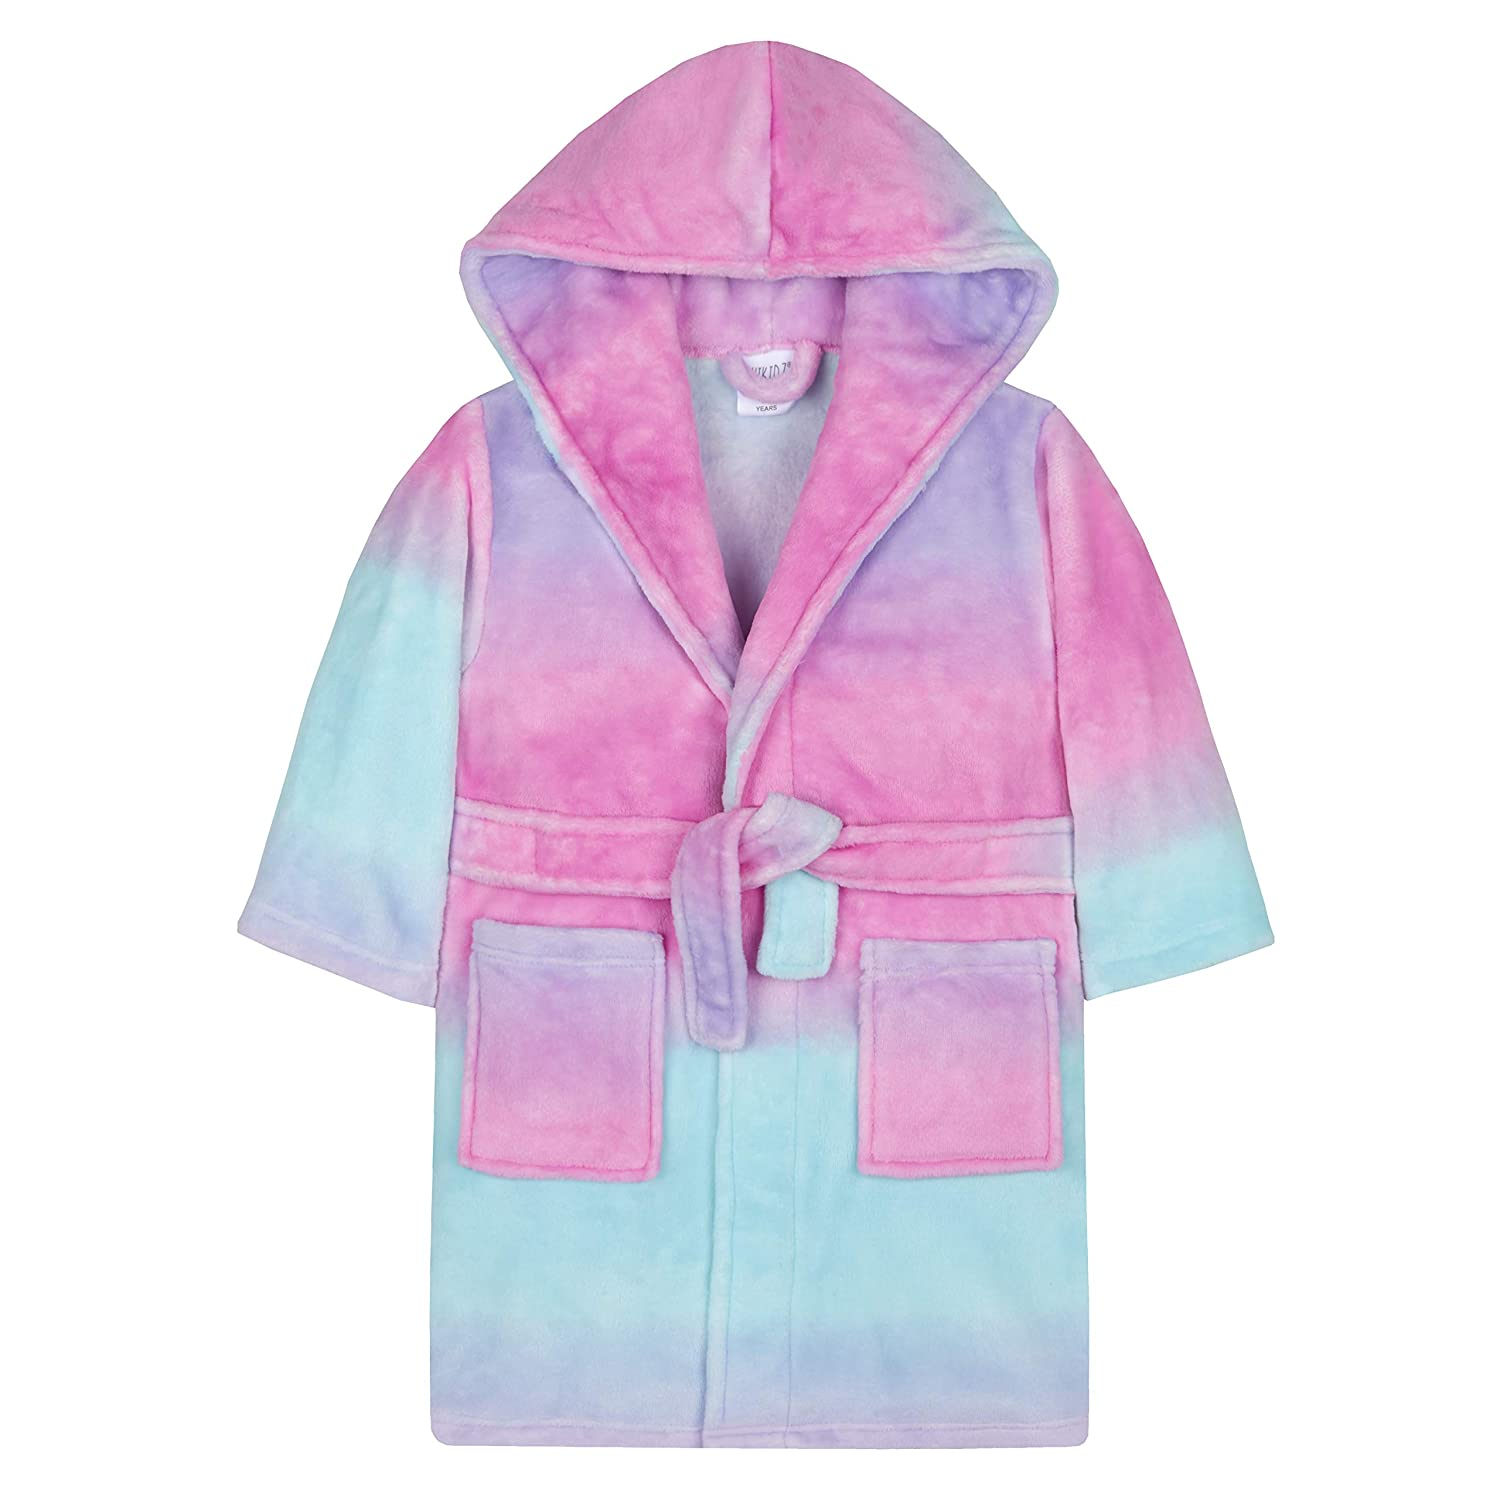 Metzuyan Girls Ombre All in One & Dressing Gown Gift Set